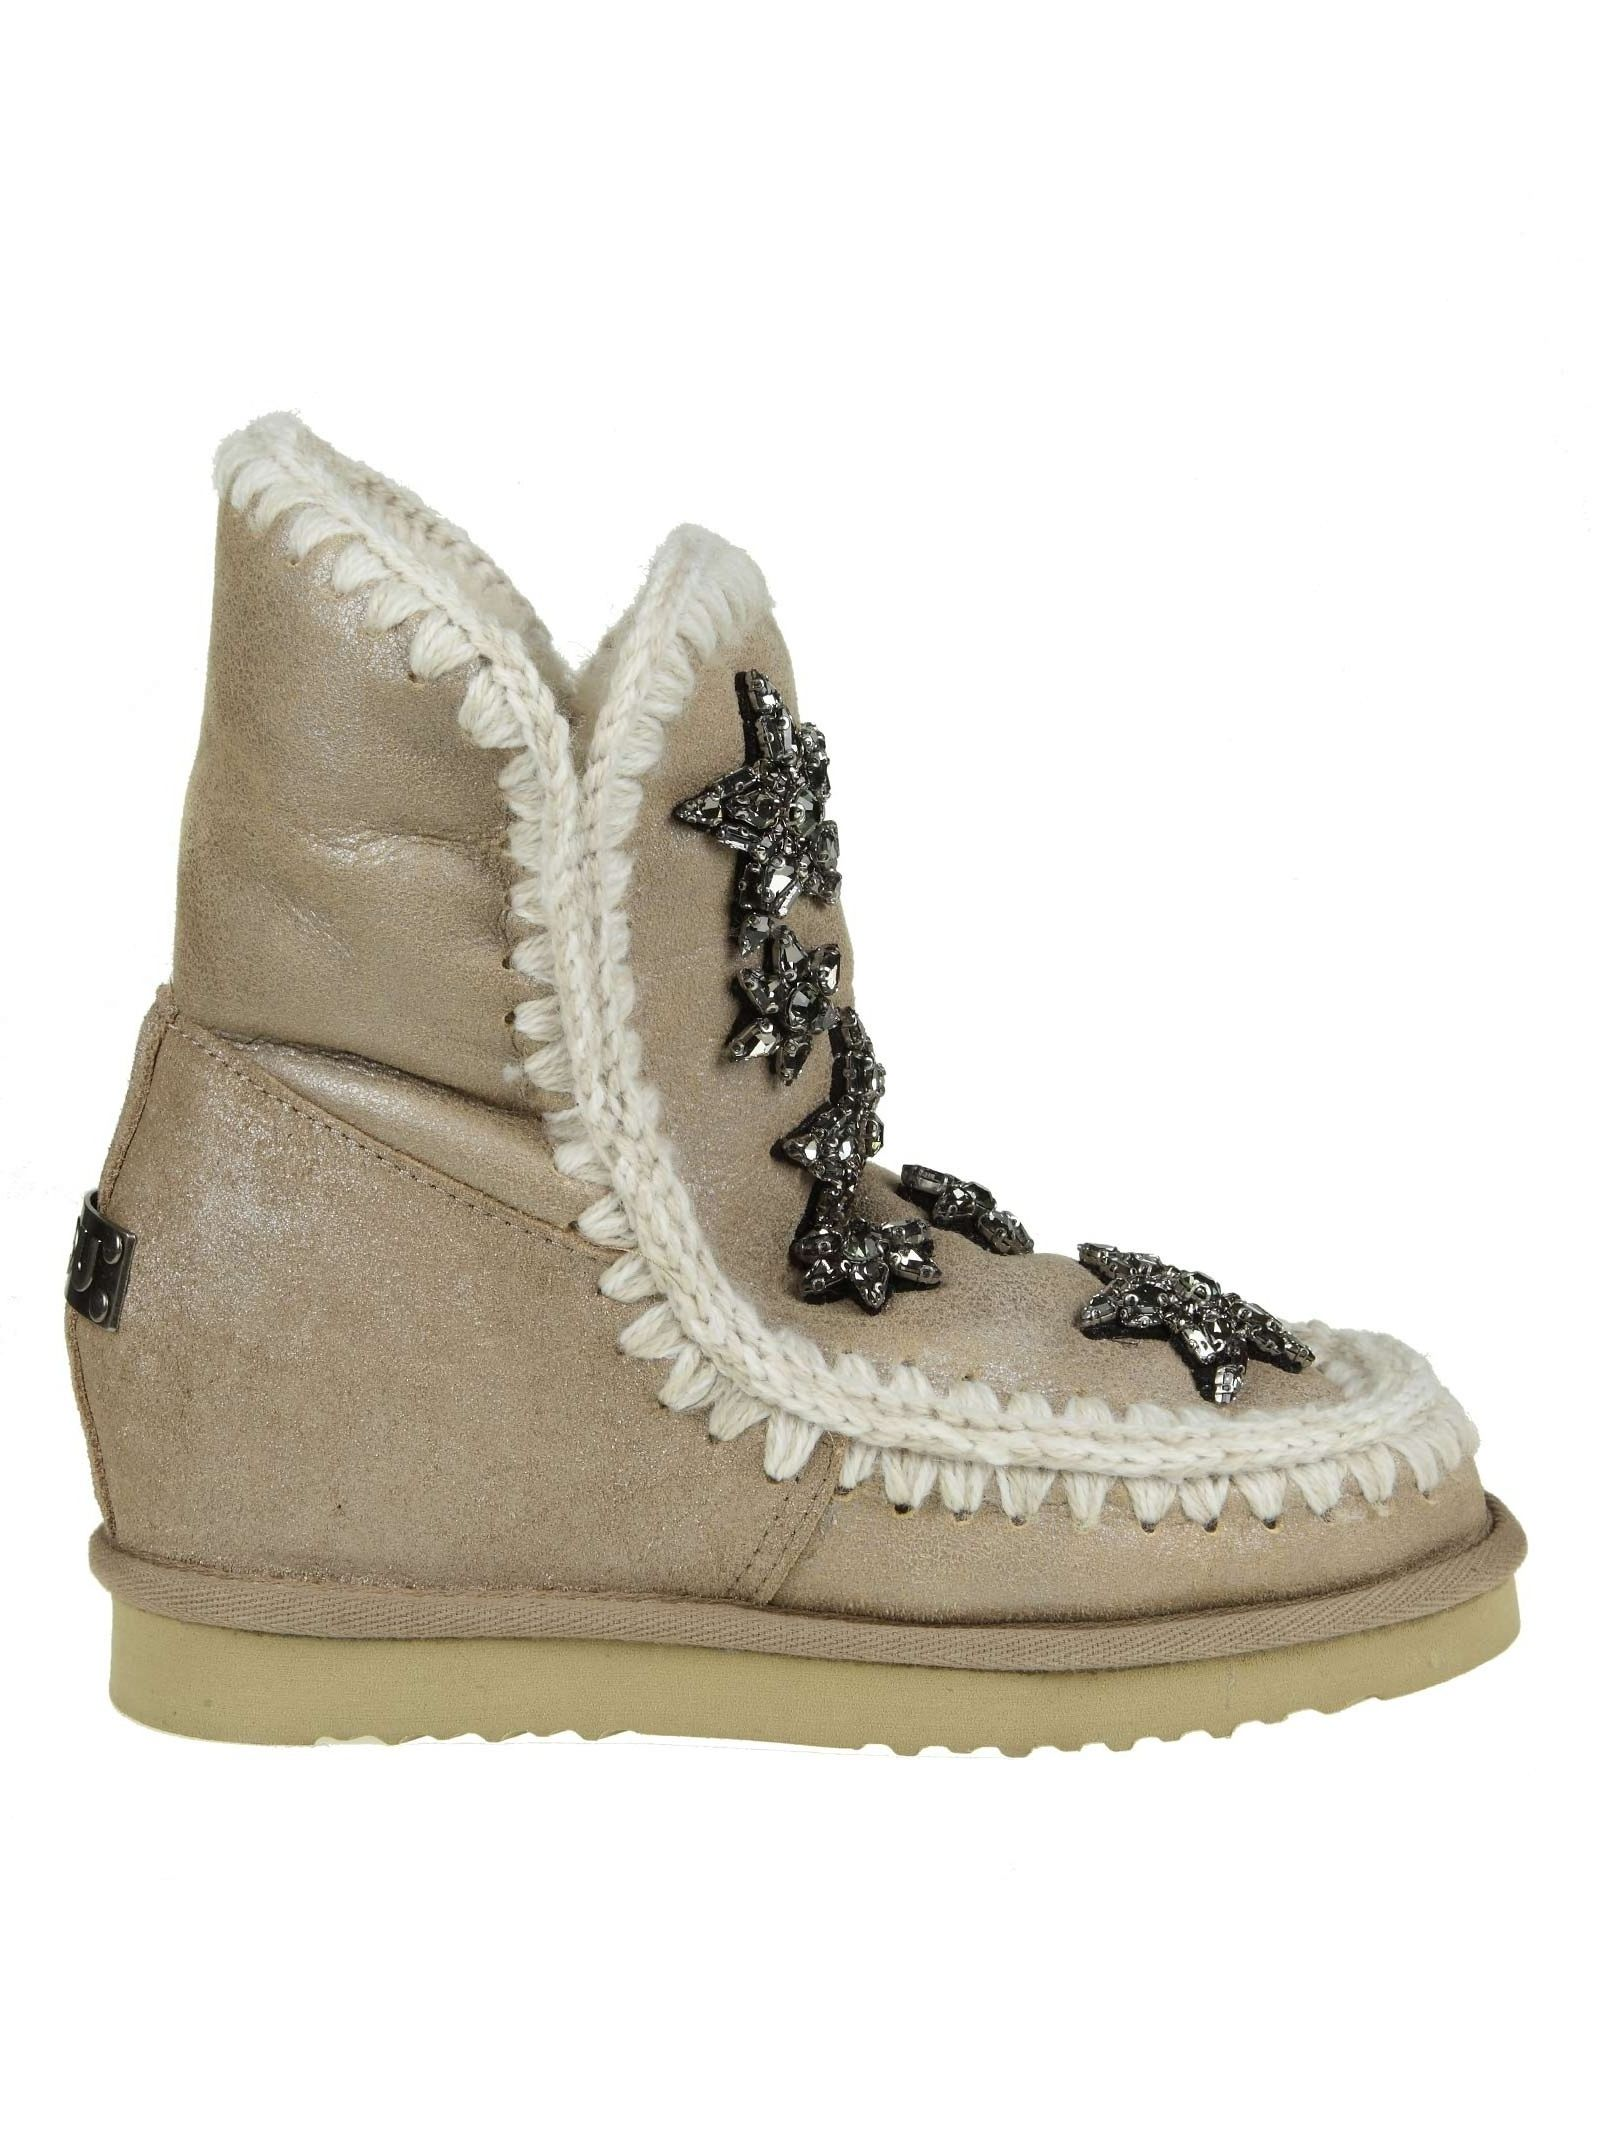 "Sneakers ""Inner Wedge"" Beige Leather With Decoration Crystal Applied in Stone"